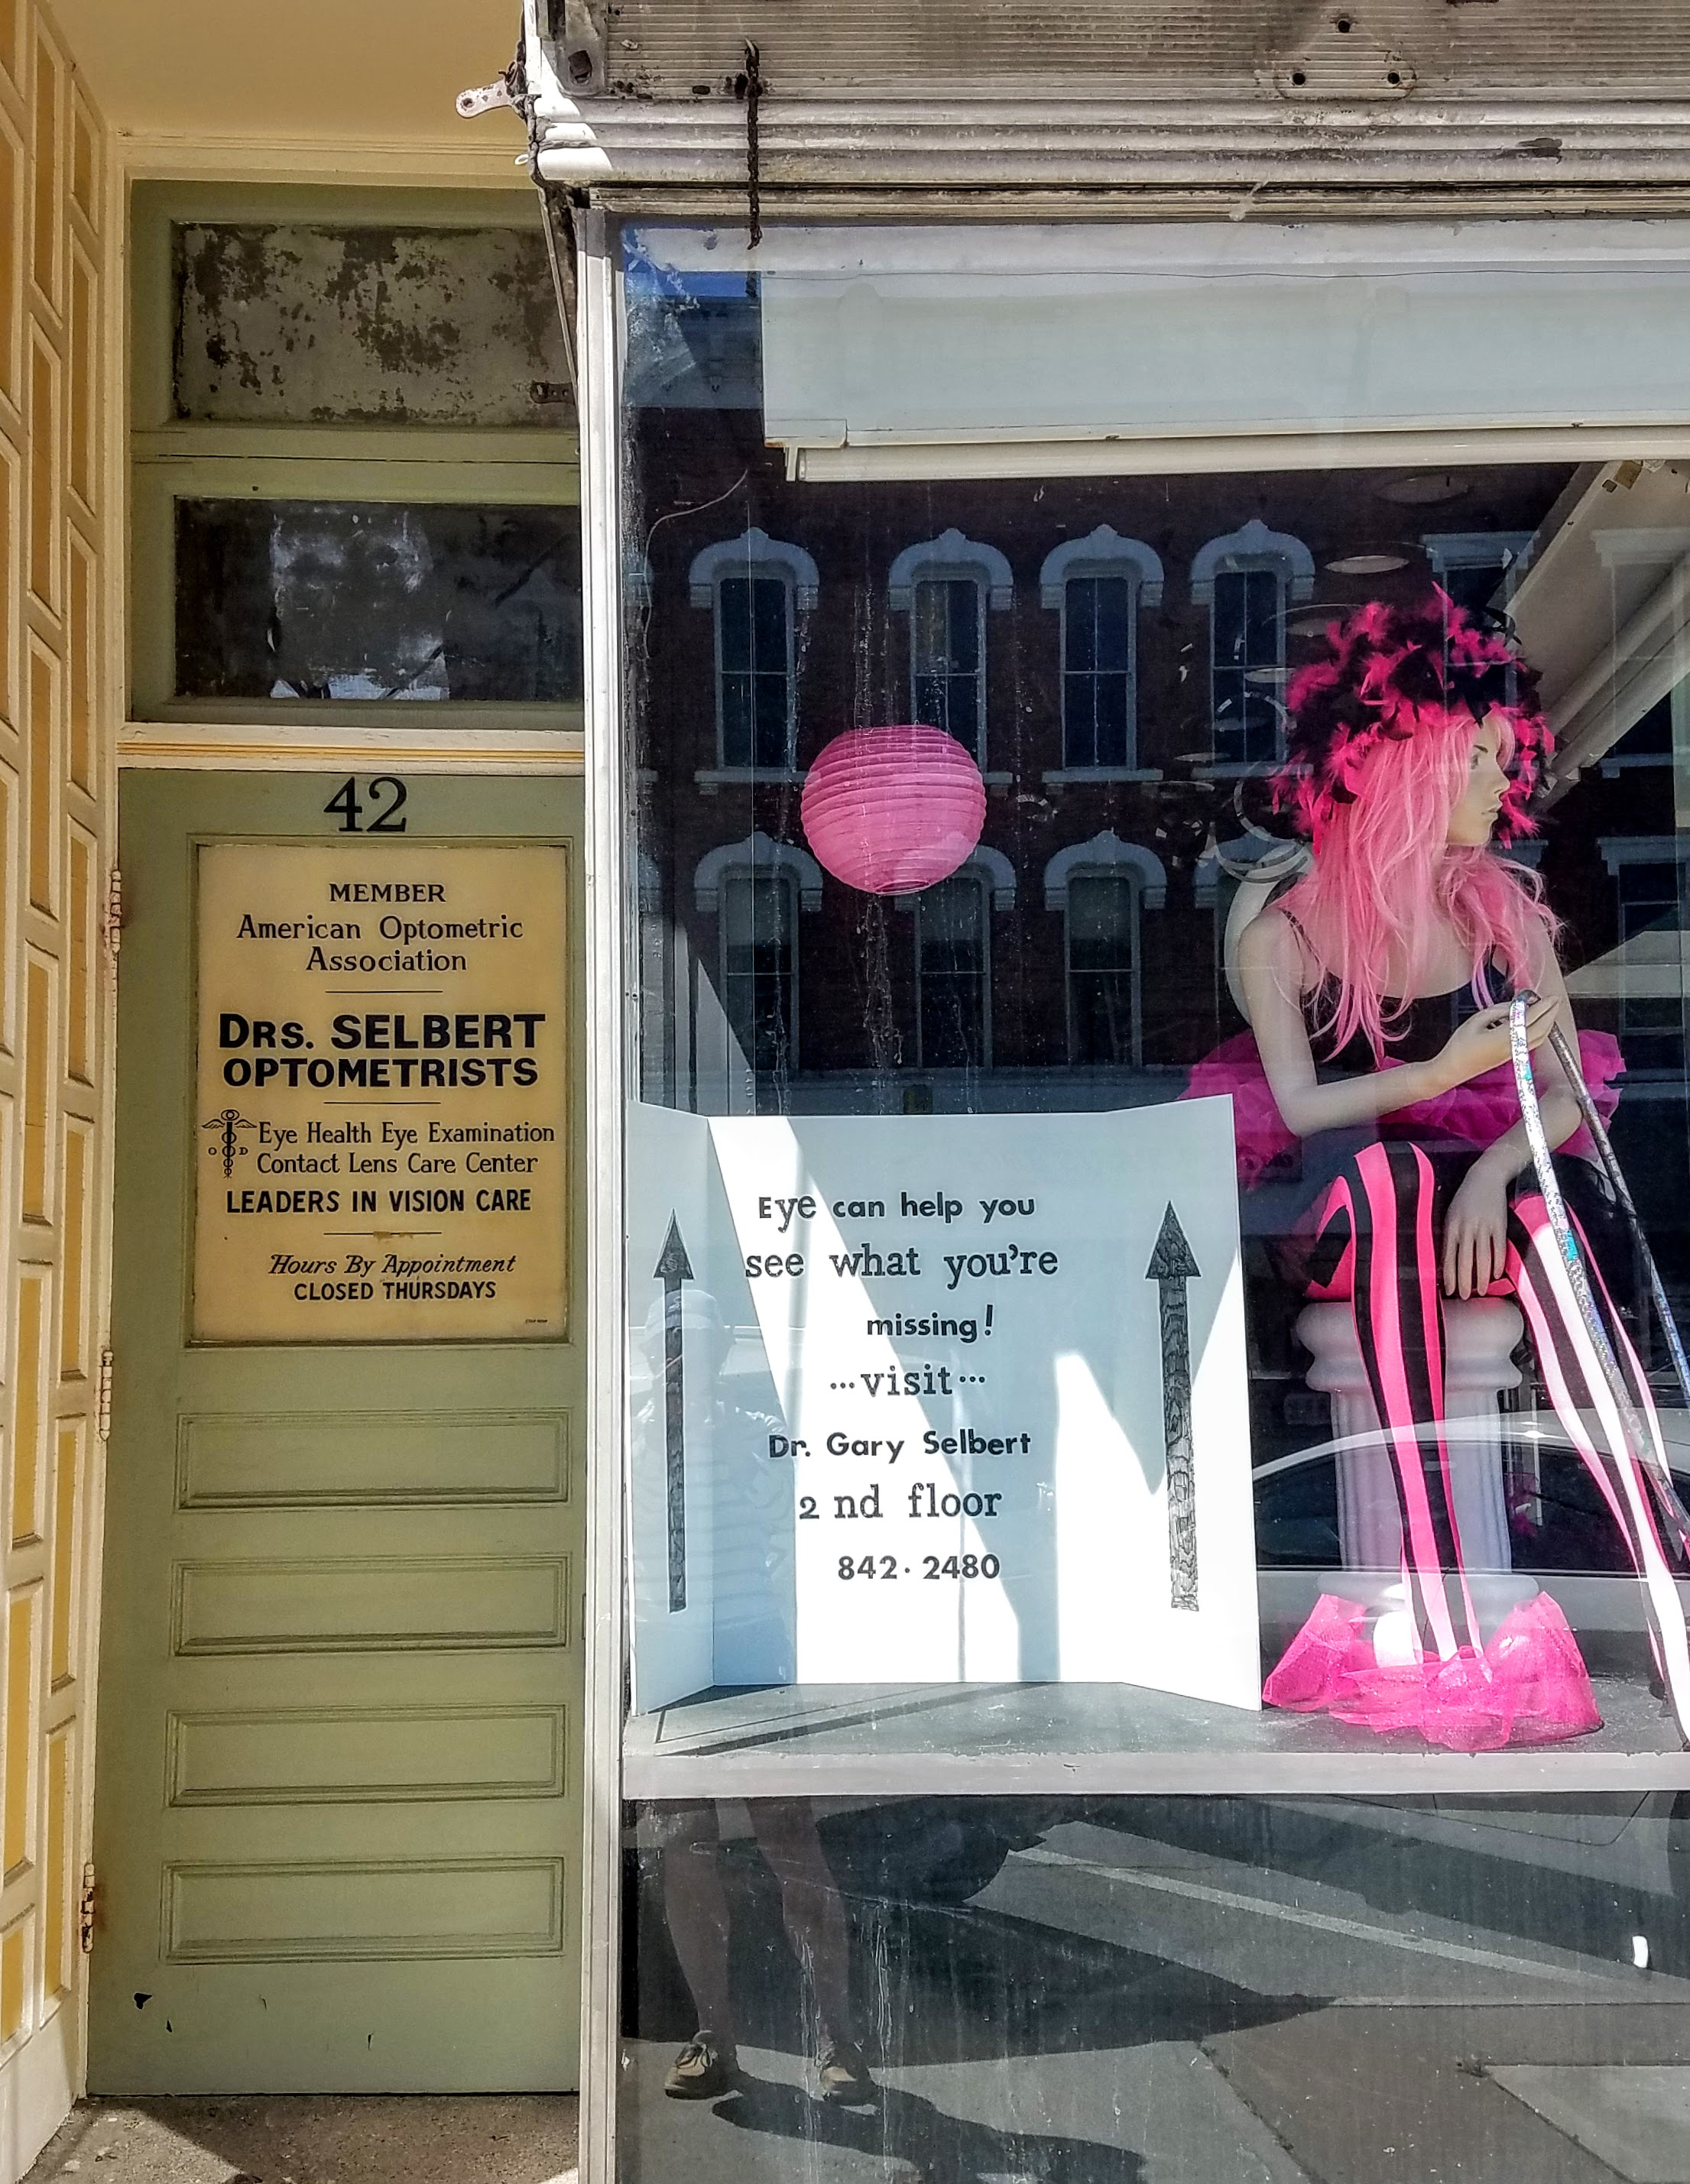 Couldn't resist posting a picture of the creative advertising used by this Optometrist in Amsterdam, NY